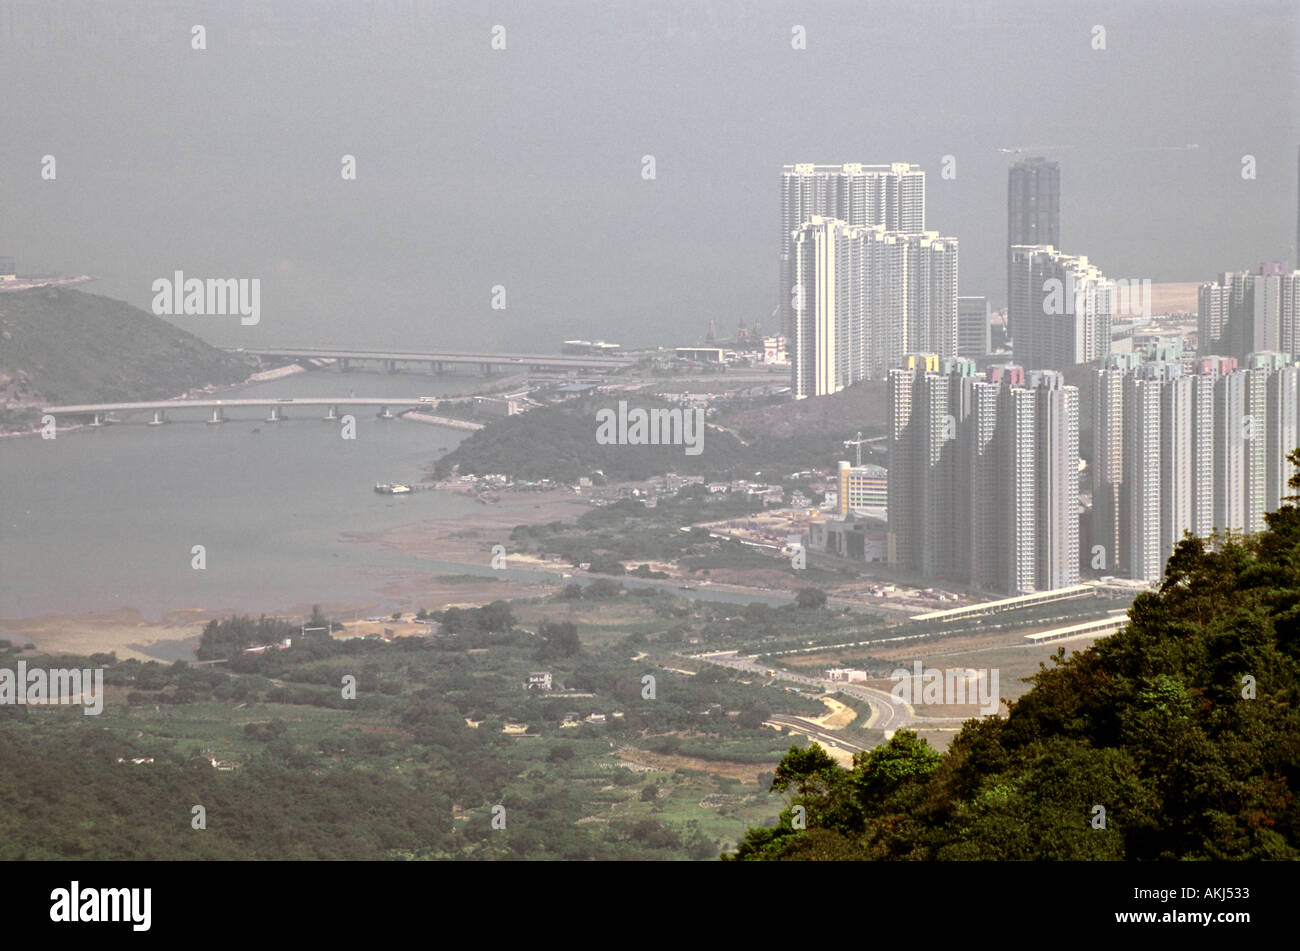 Chek Lap Kok airport in Hong Kong as seen from afar in Lantau Island - Stock Image